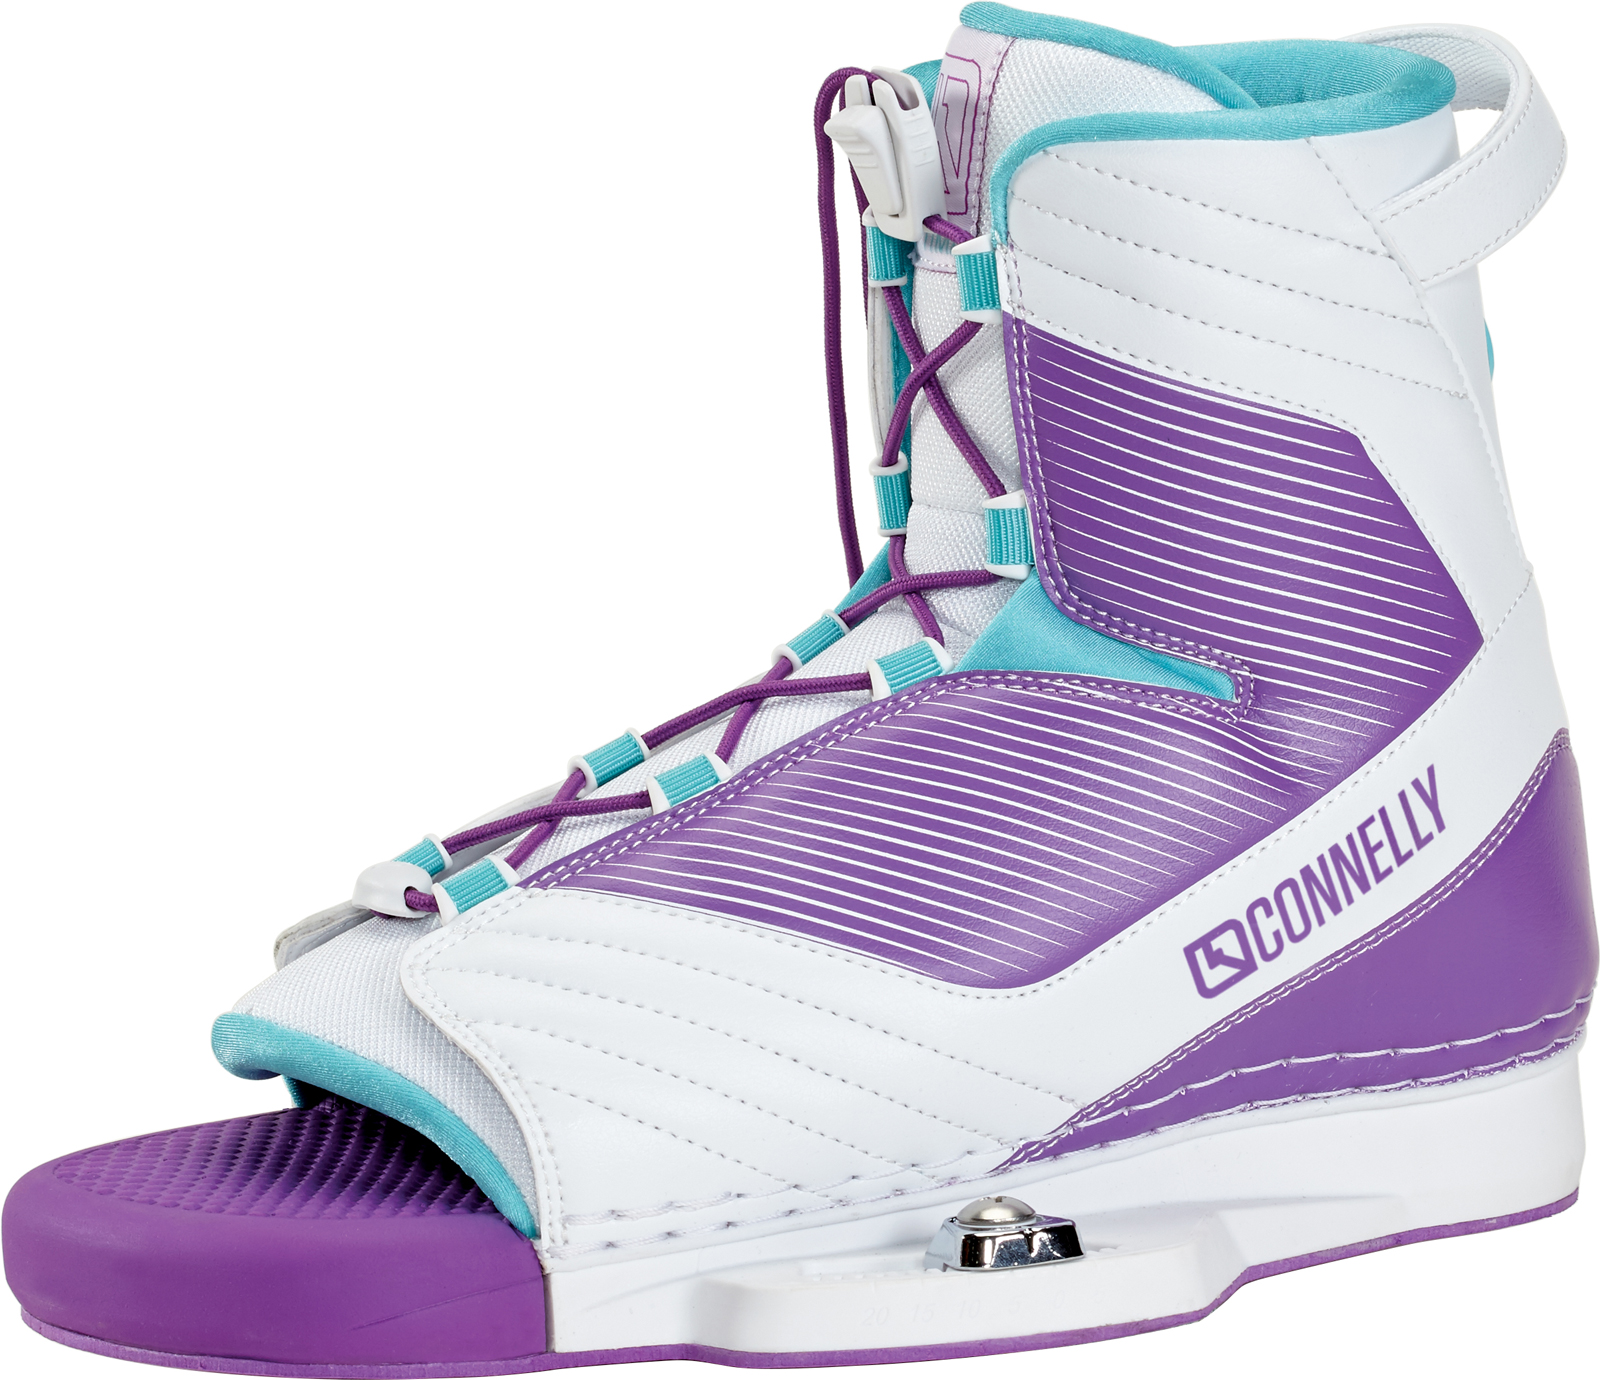 OPTIMA WOMEN'S BOOT CONNELLY 2019